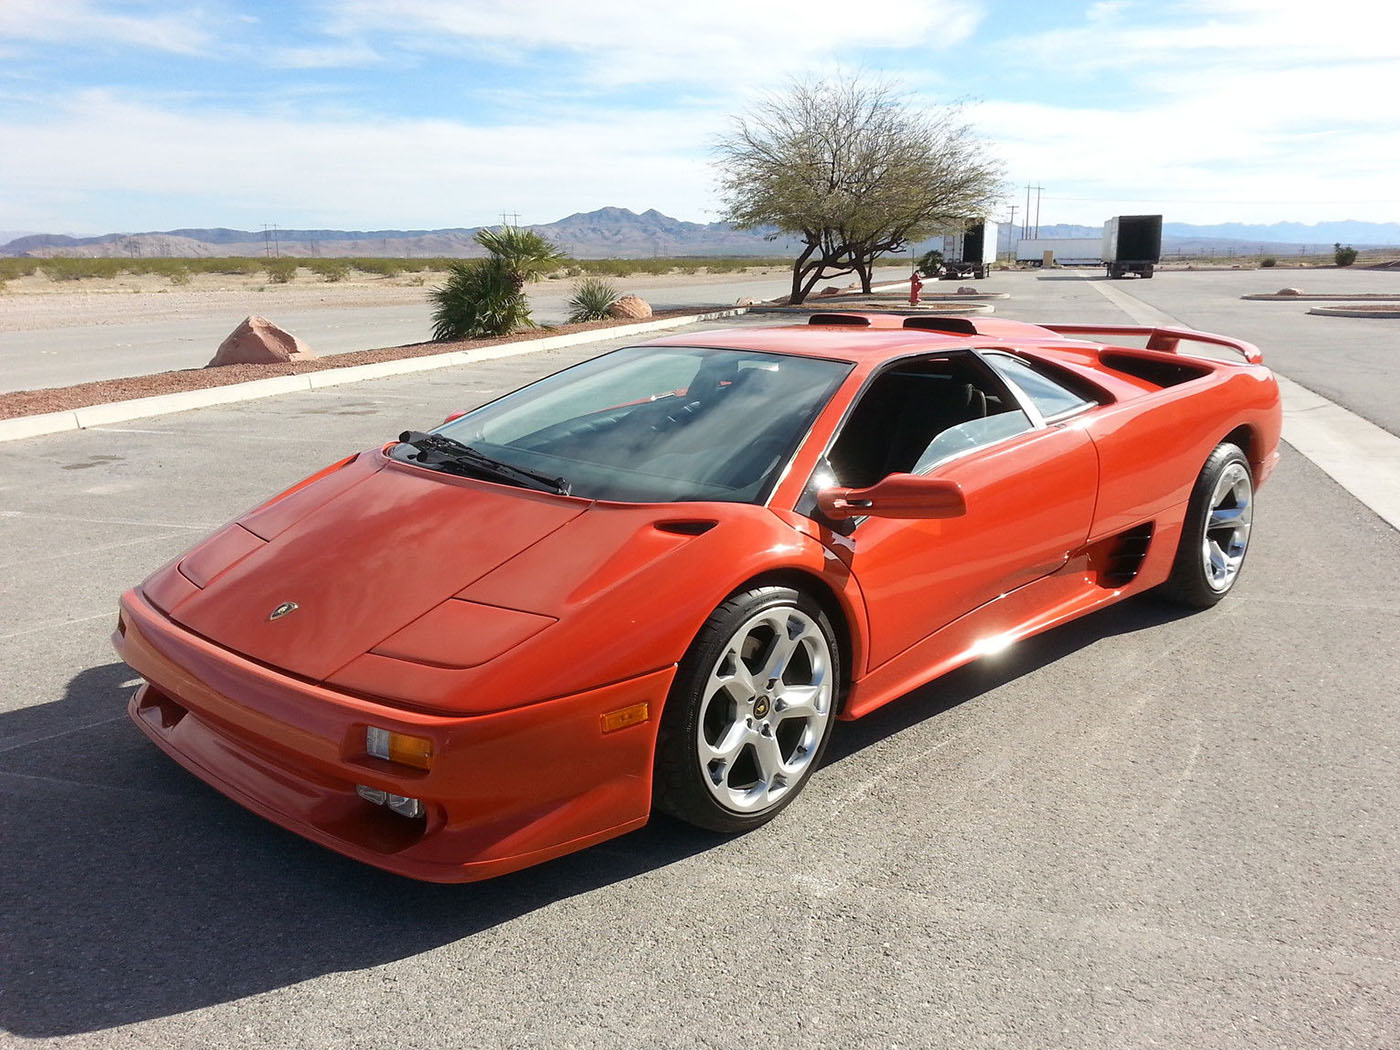 If You Have Been Searching For Something With Supercar Looks But With A  Drivetrain You Can Have Serviced Without Breaking The Bank Then This Diablo  Might Be ...